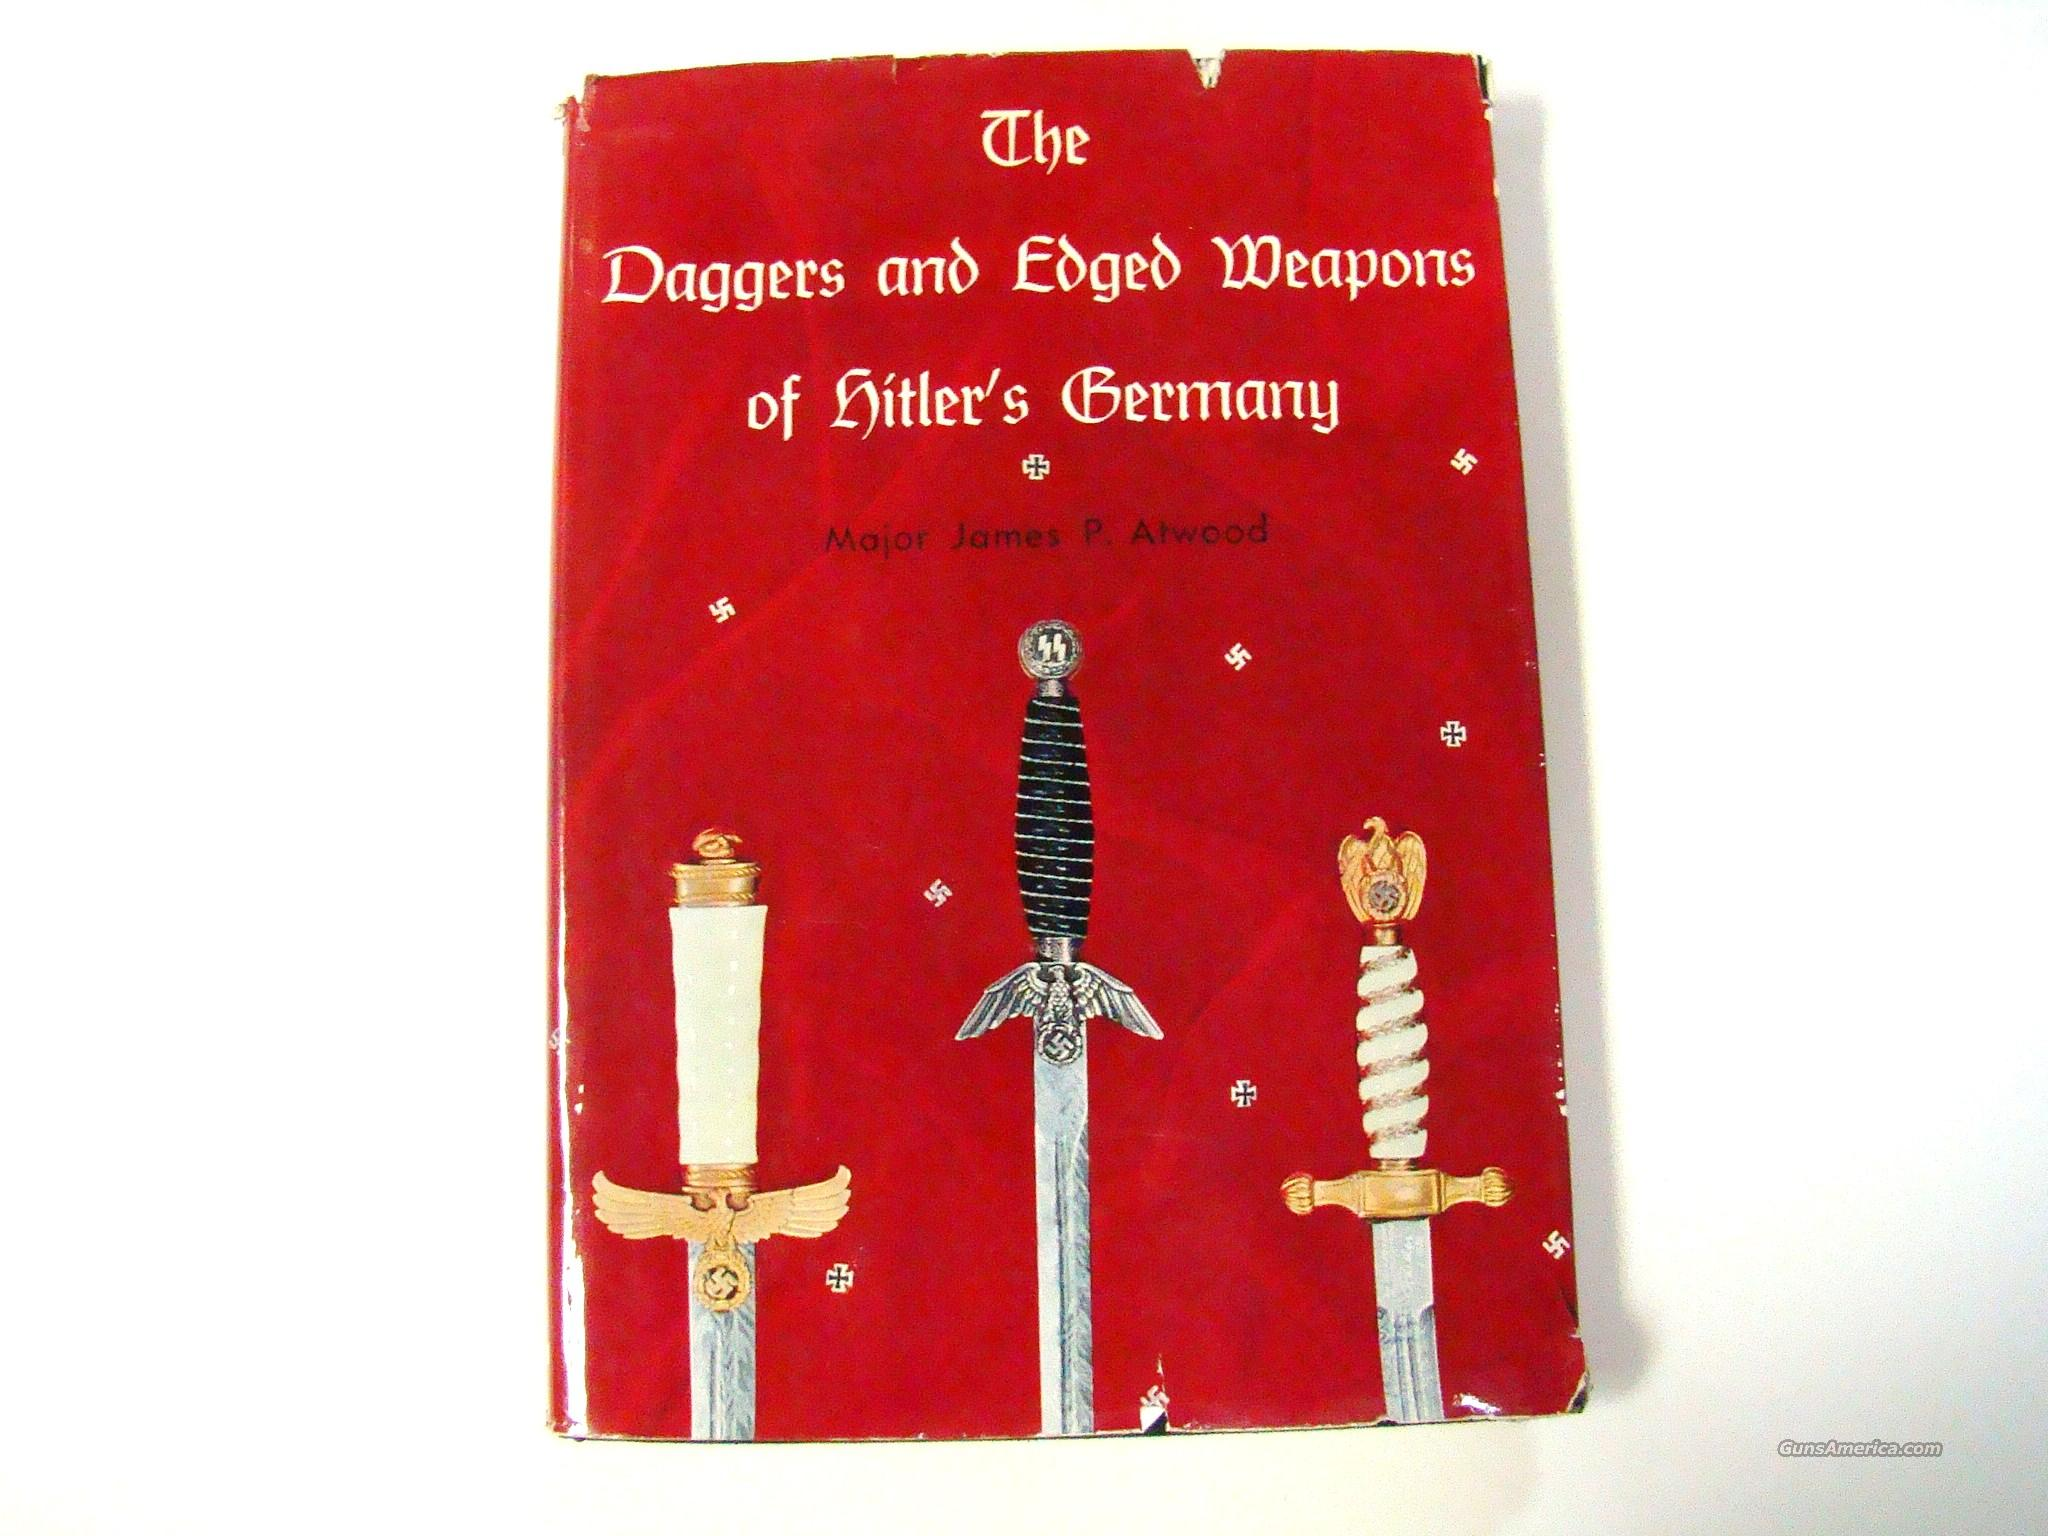 THE DAGGERS AND EDGE WEAPONS OF HITLER'S GERMANY  Non-Guns > Books & Magazines